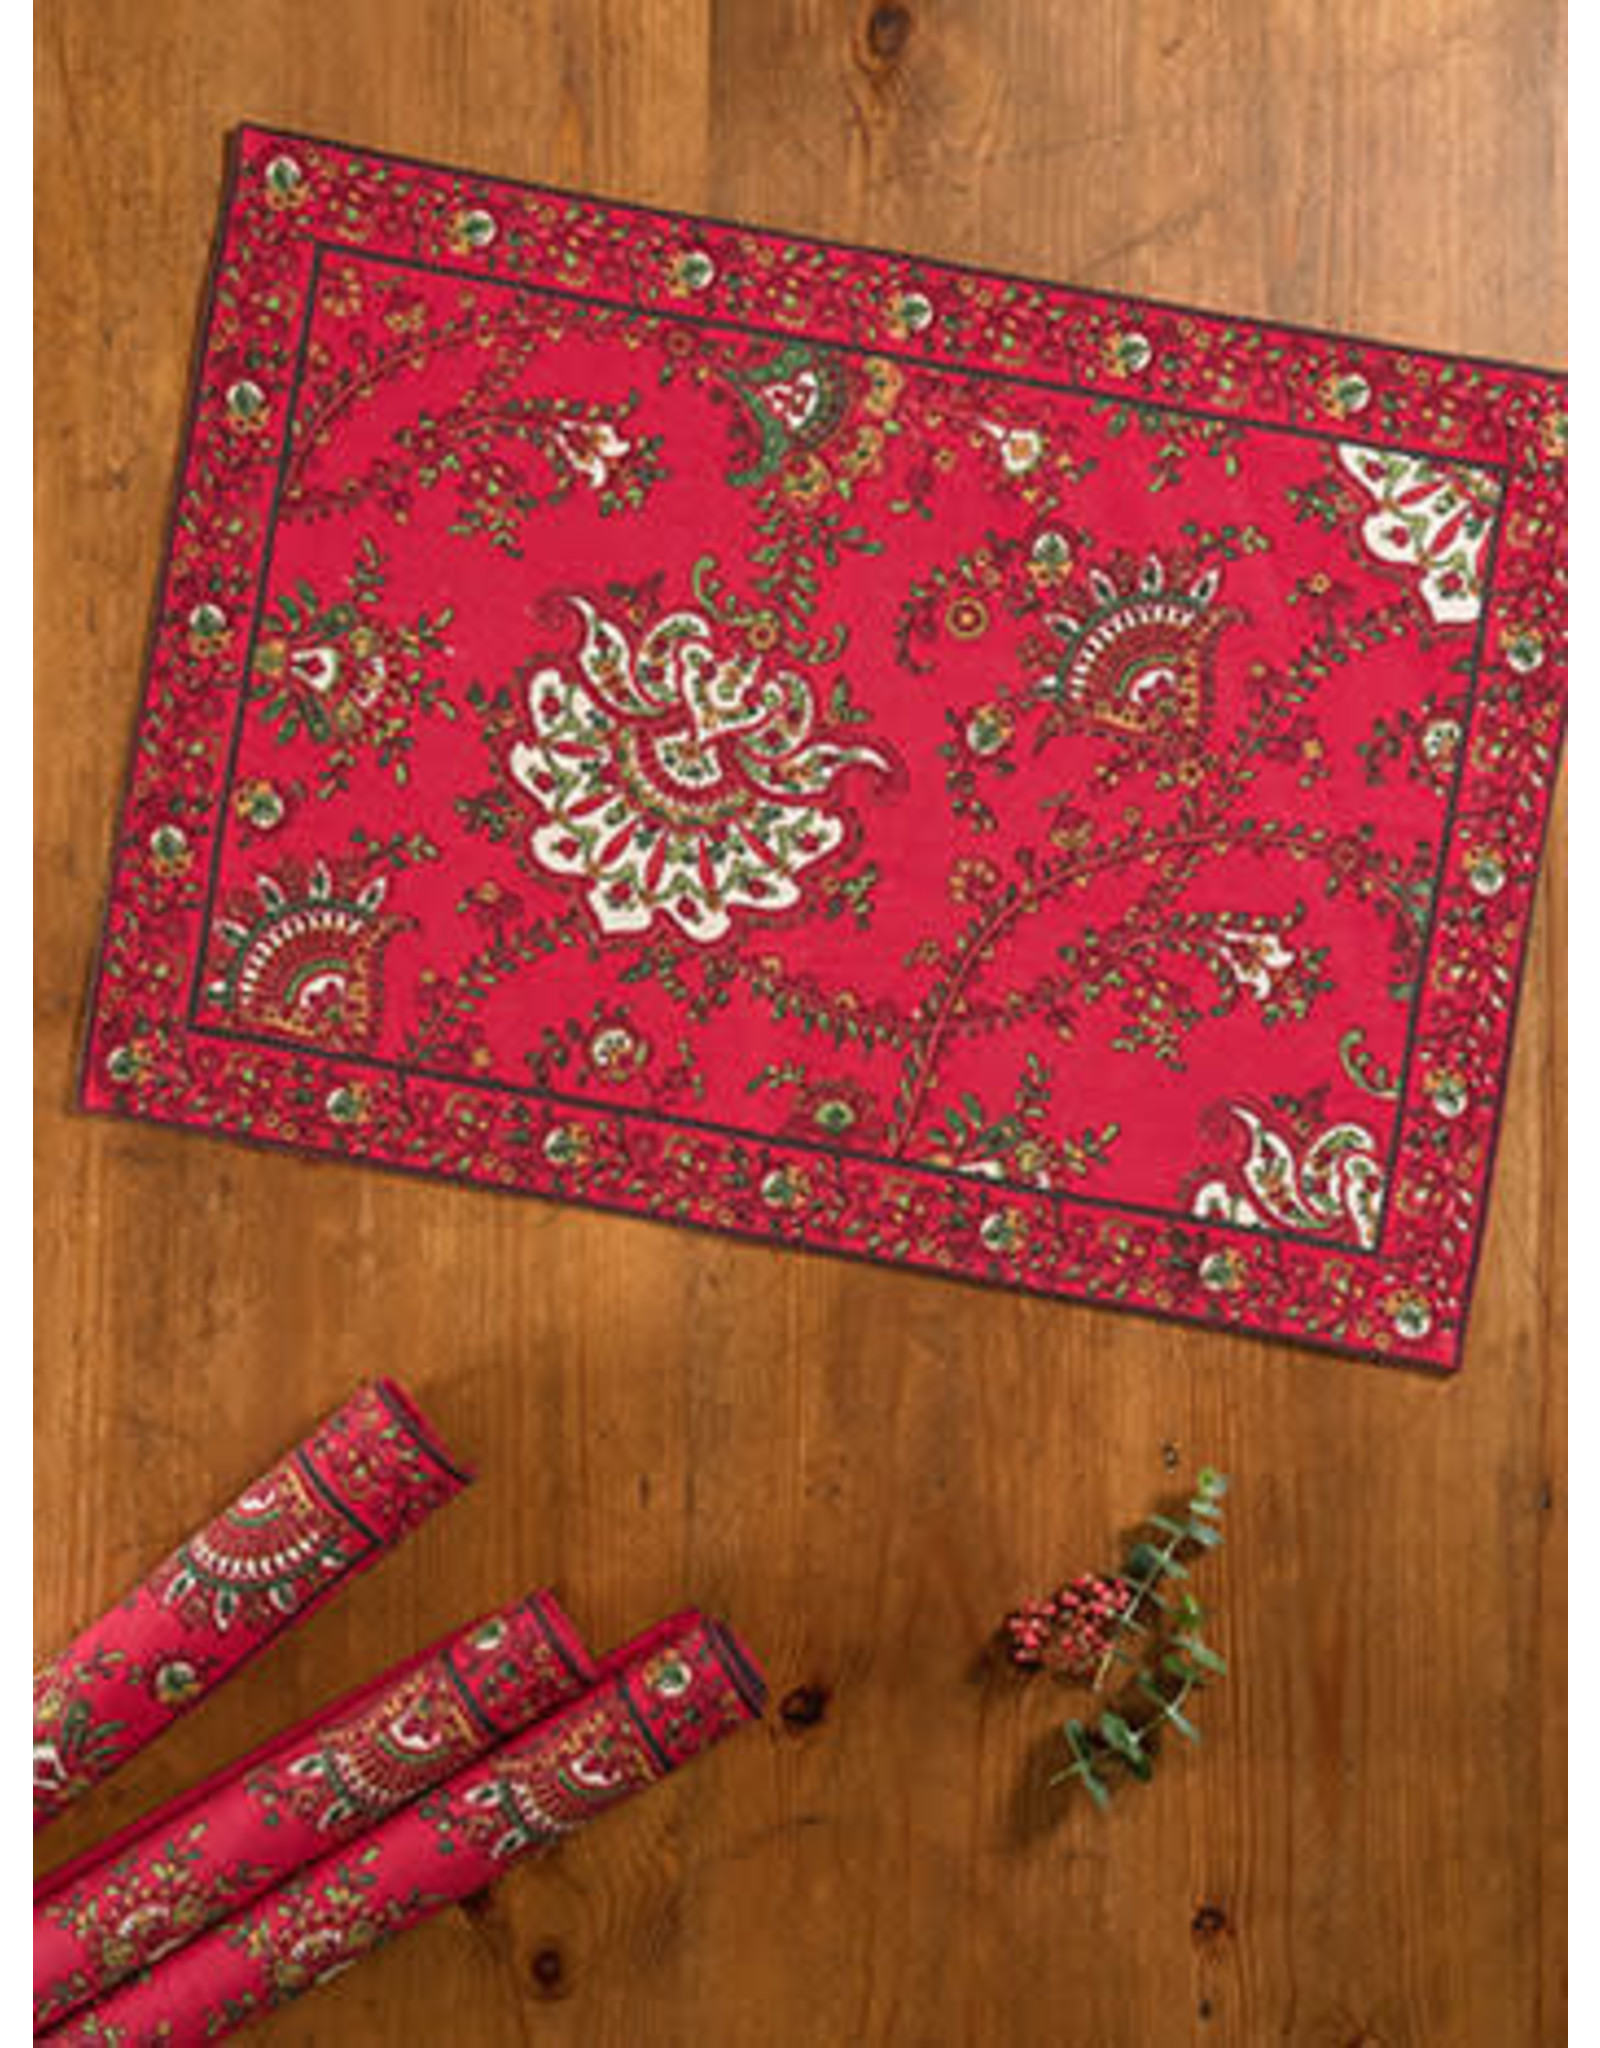 April Cornell Placemat (empress paisley red)  | April Cornell